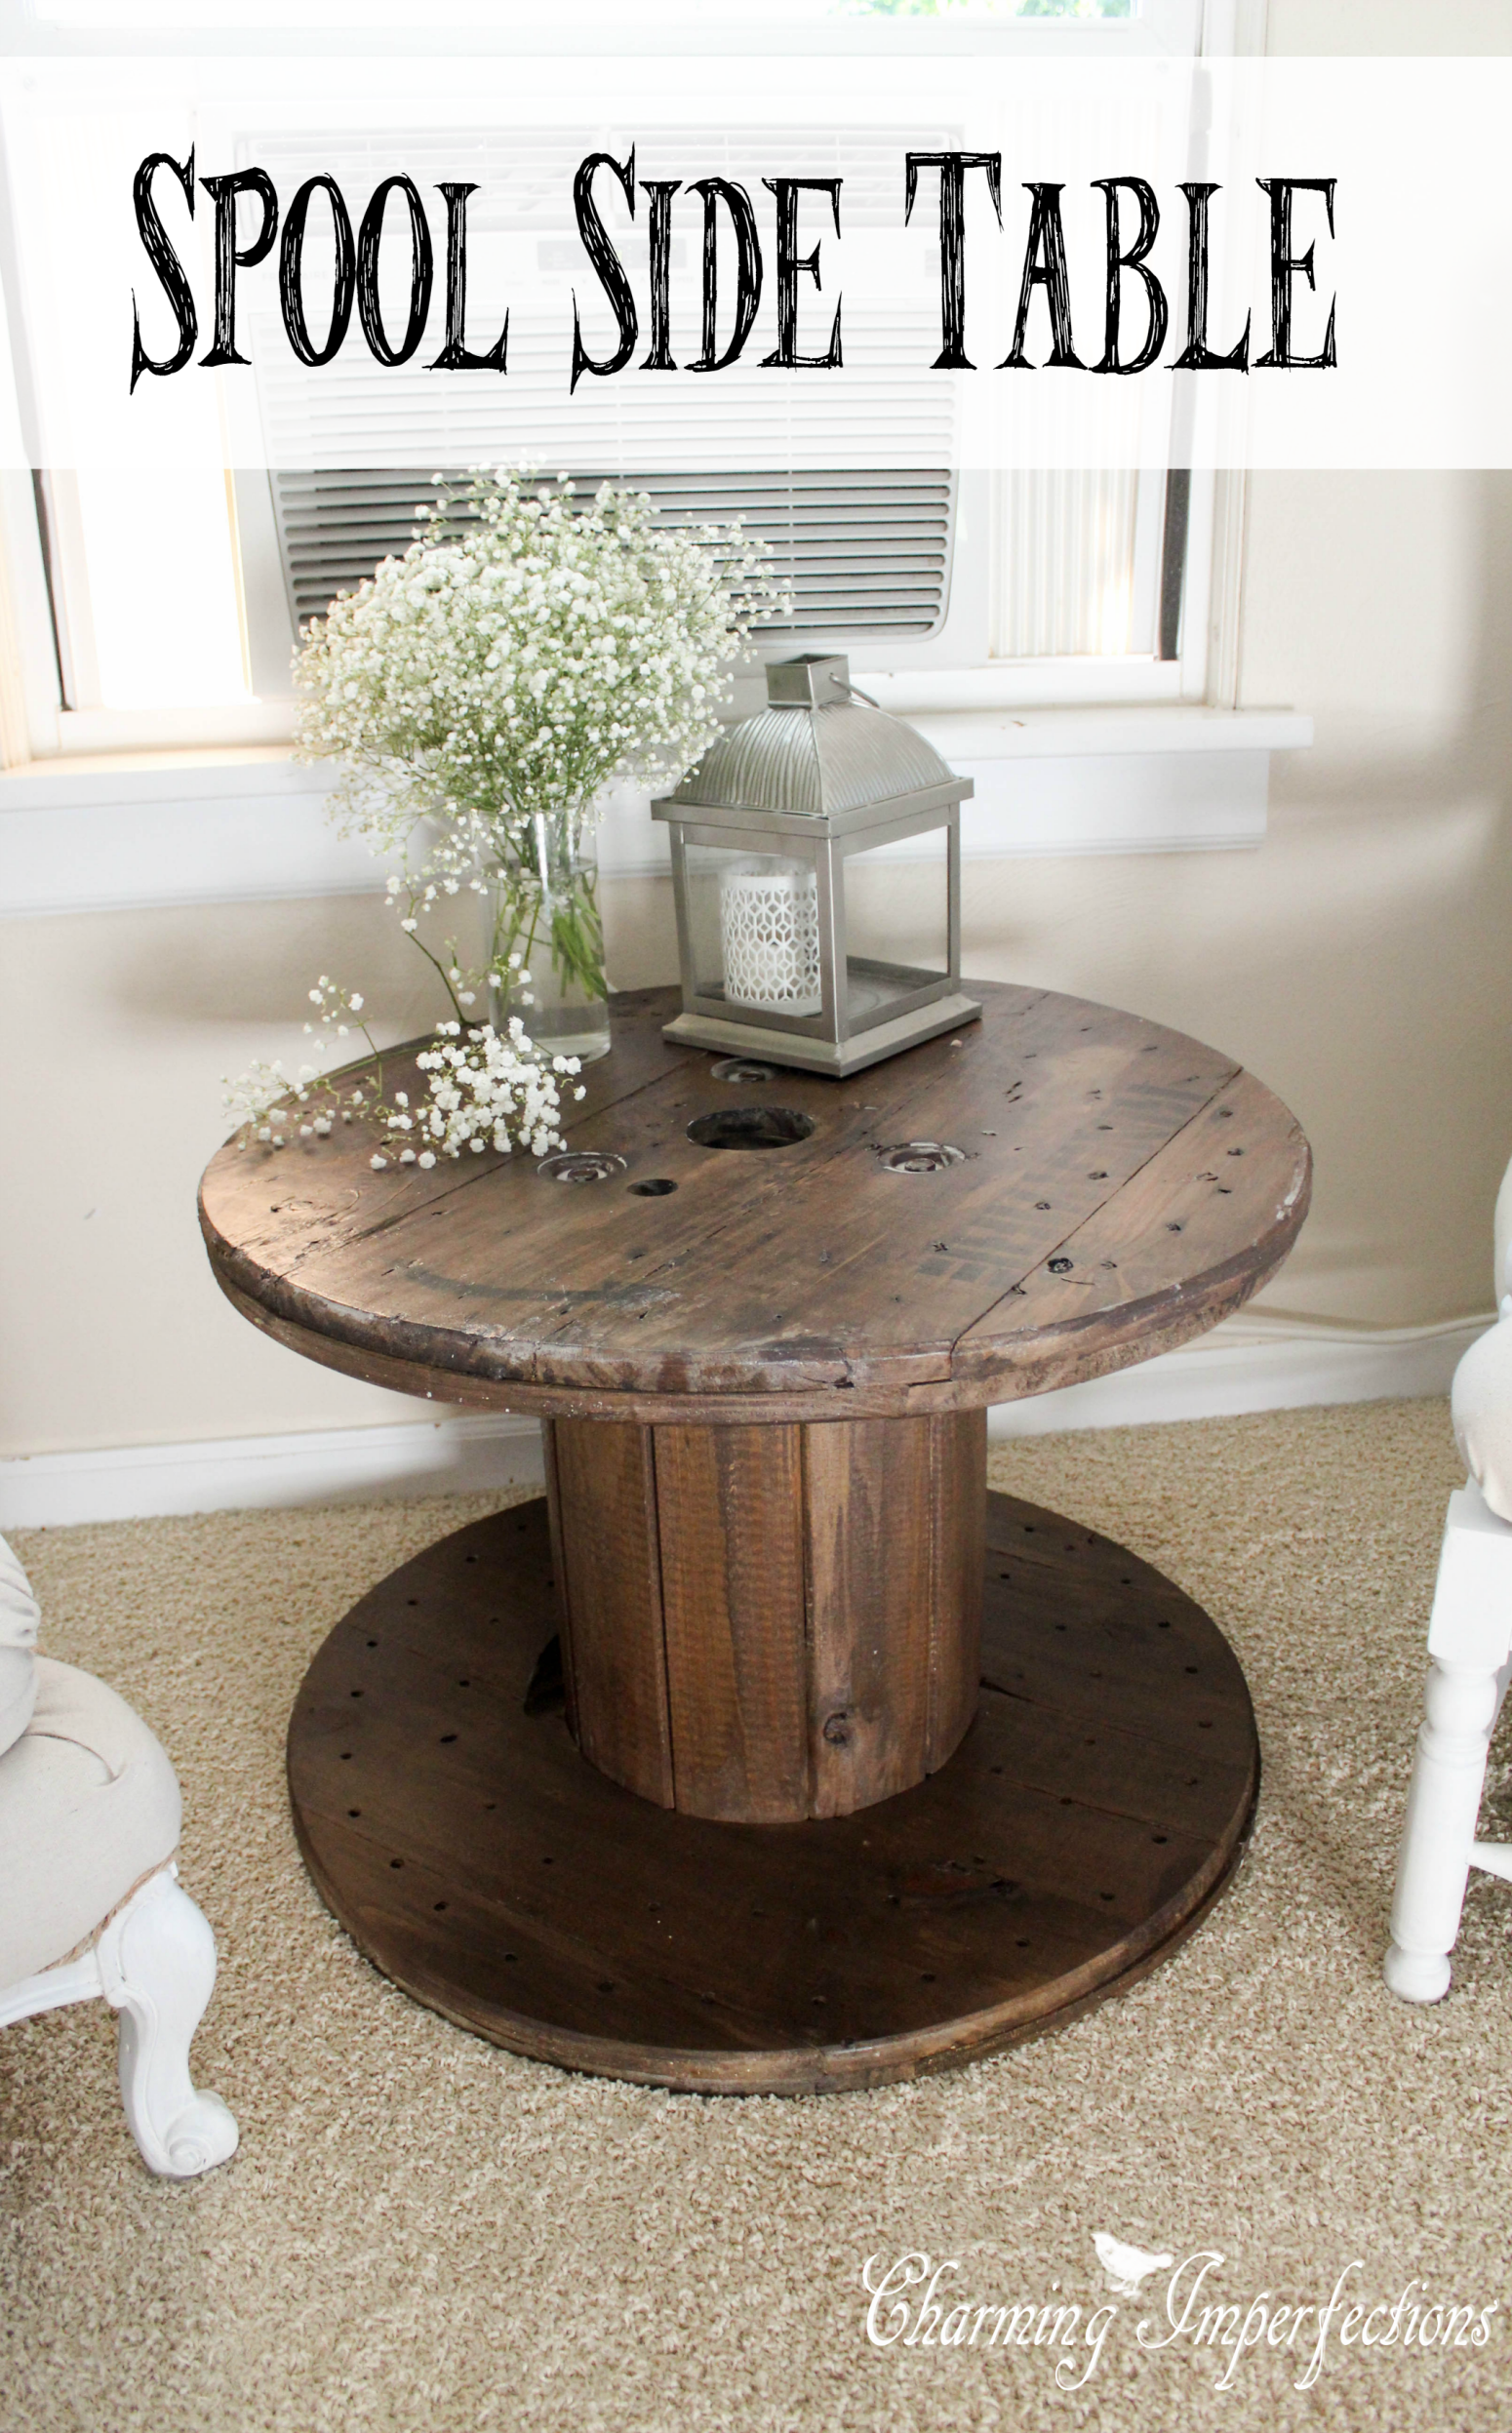 This side table is the perfect farmhouse touch with an even more